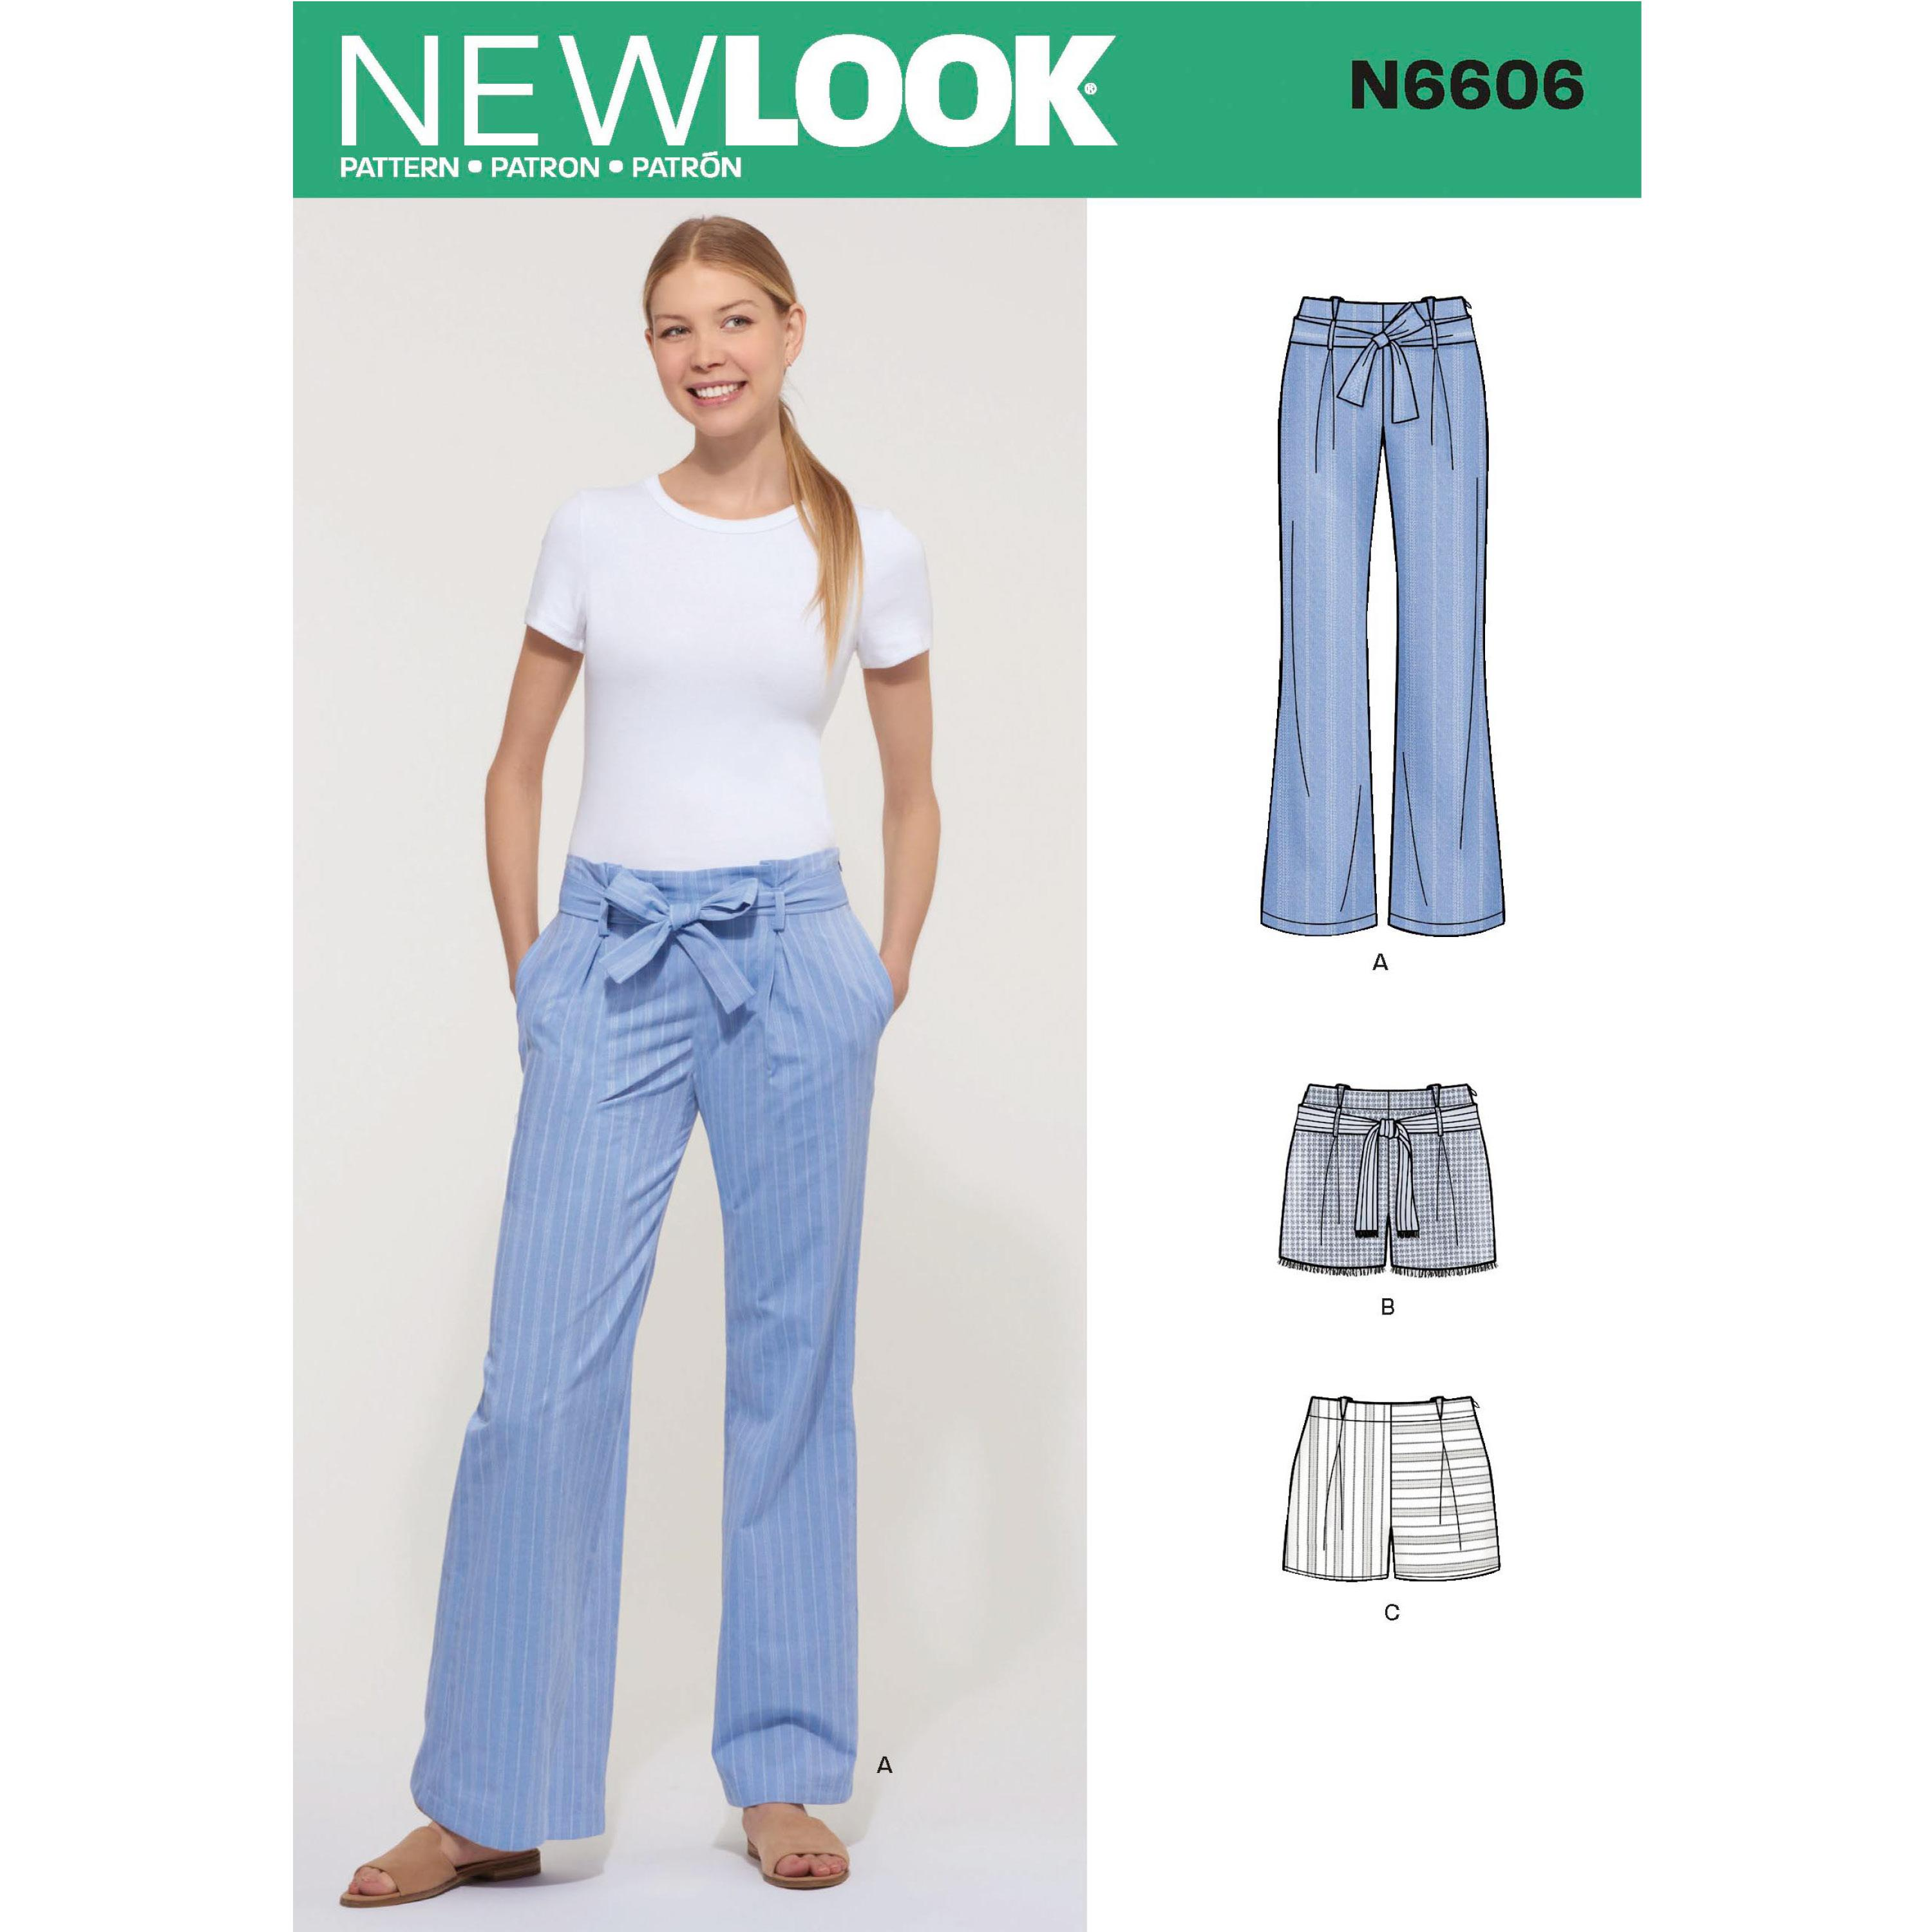 NewLook Sewing Pattern N6606 Misses' Pant and Shorts